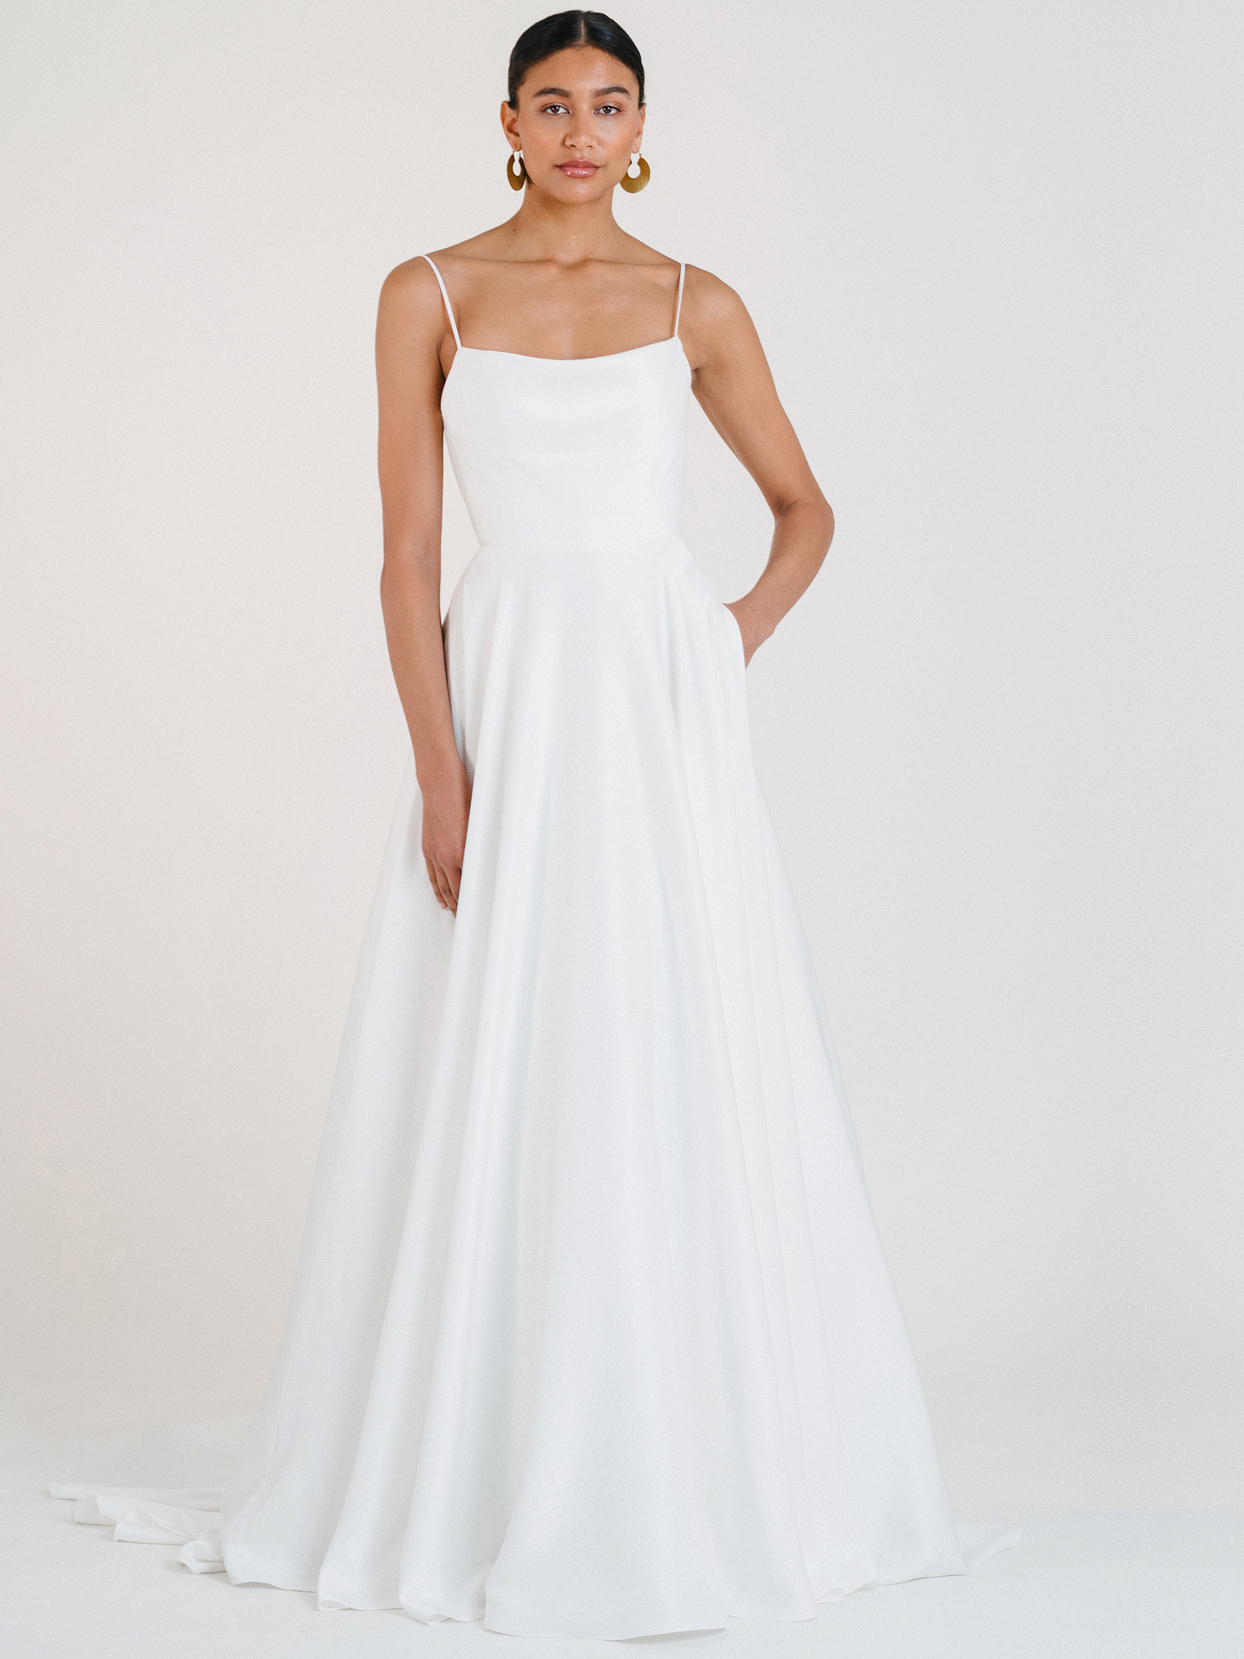 jenny by jenny yoo thin strap straight across a-line wedding dress fall 2020